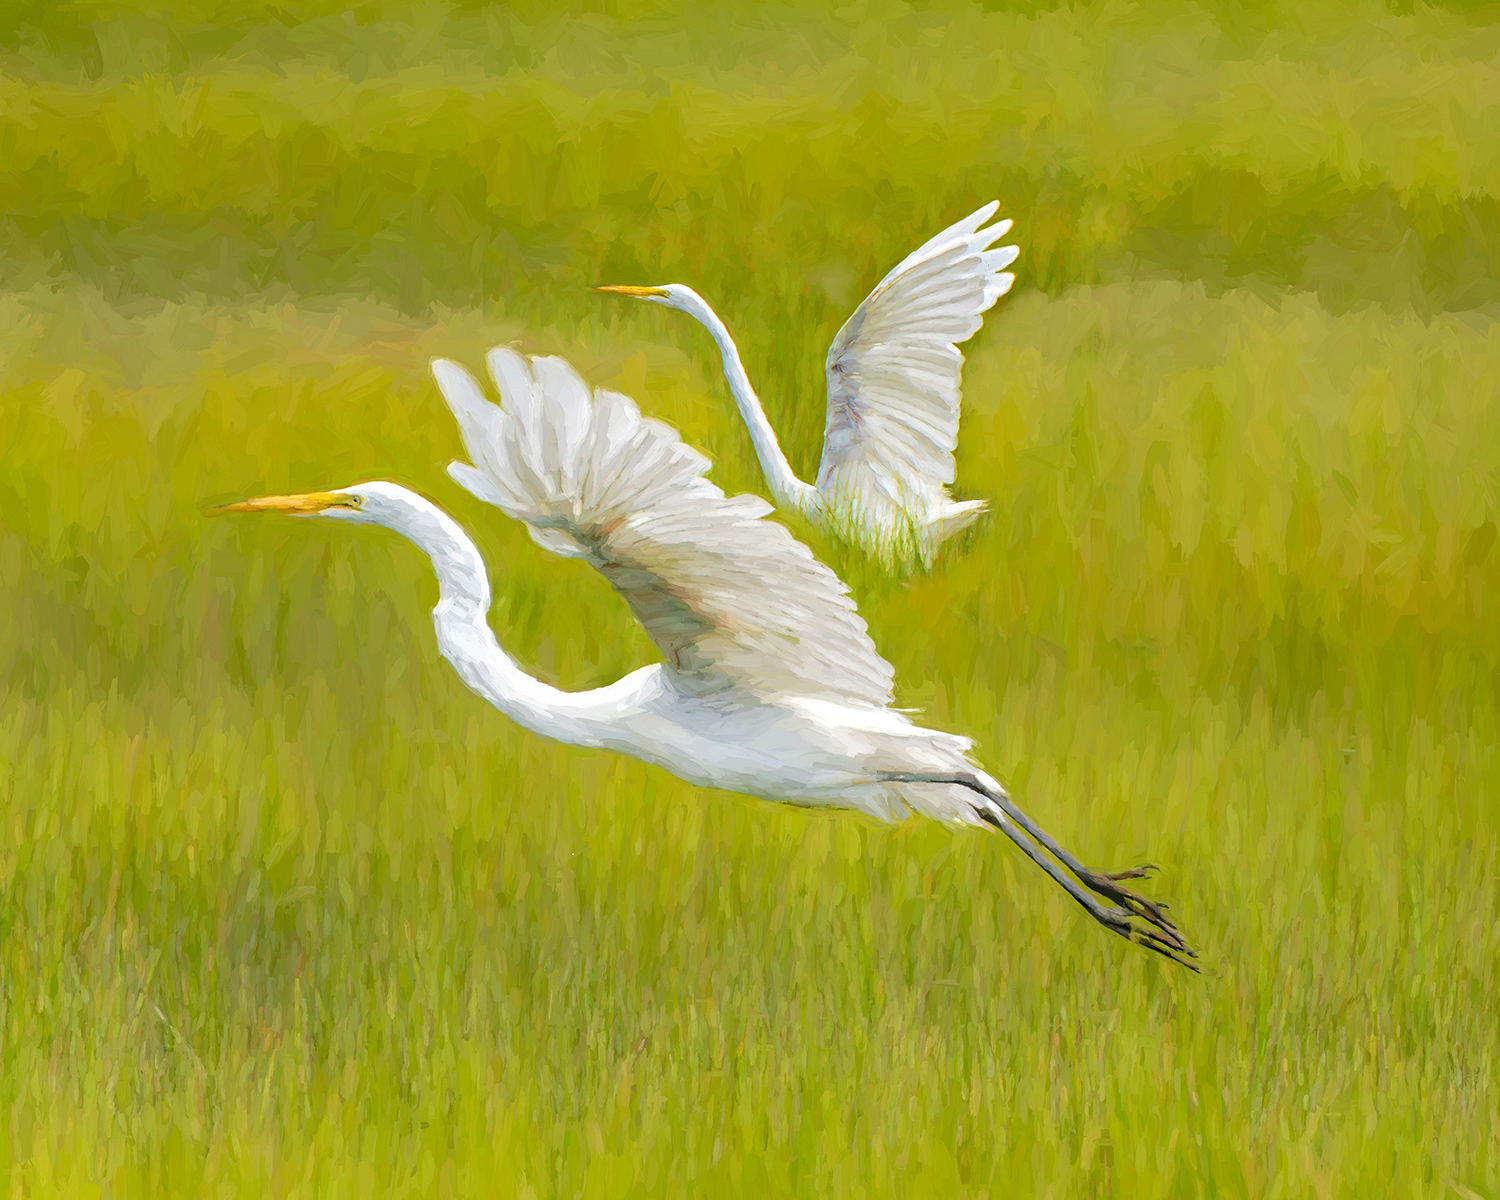 David Aloisio - Egrets in Cape May, New Jersey